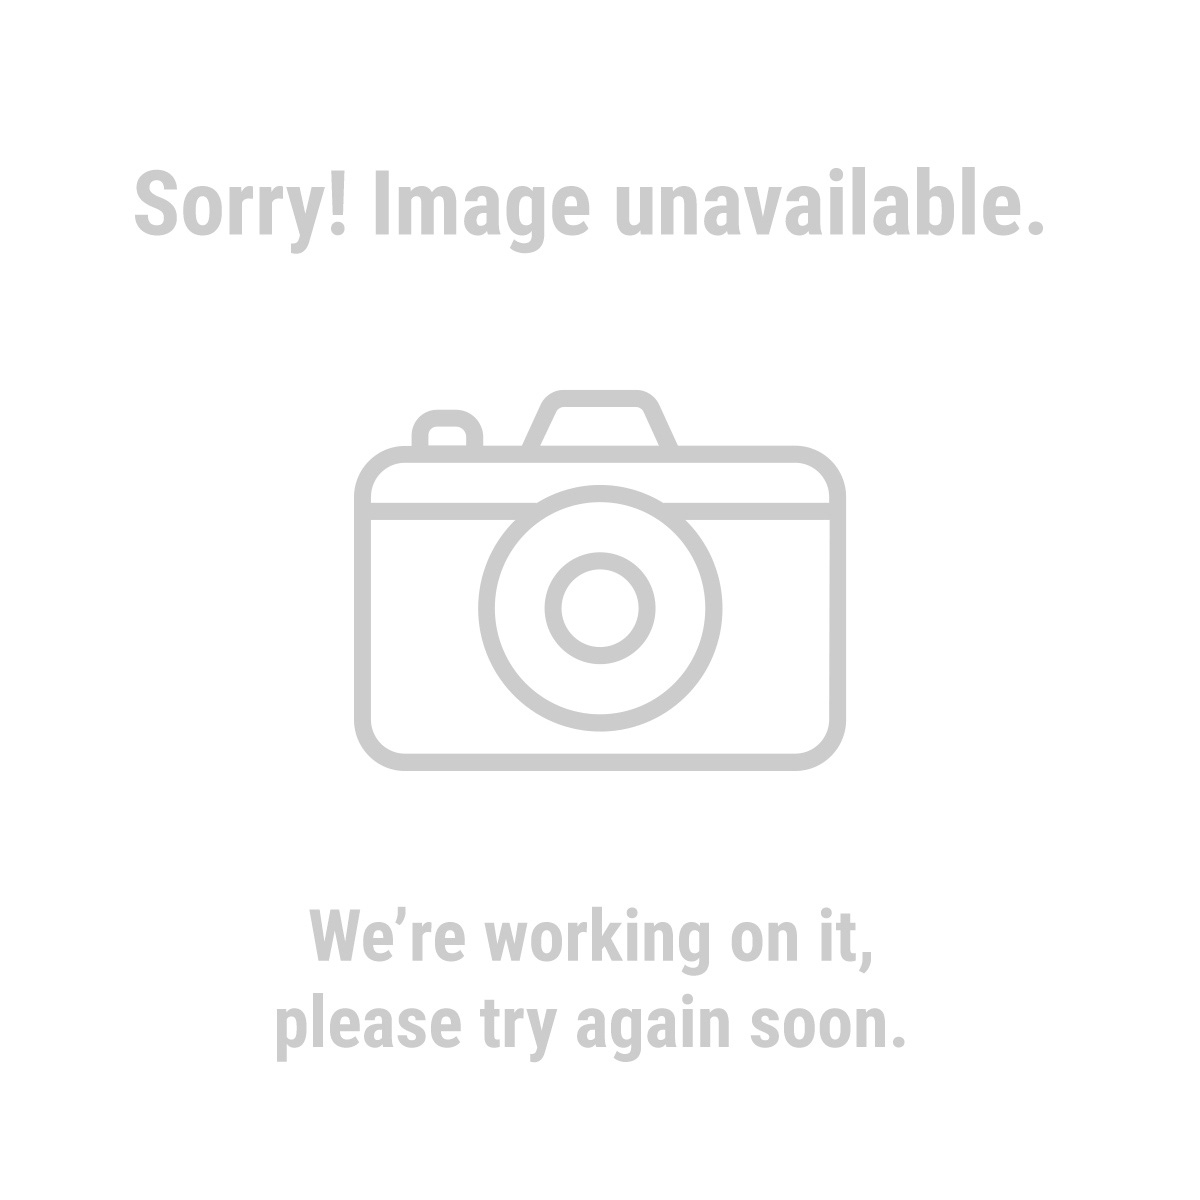 Luminar Work 66274 110 Volt, 3 Watt, 28 LED Work Light